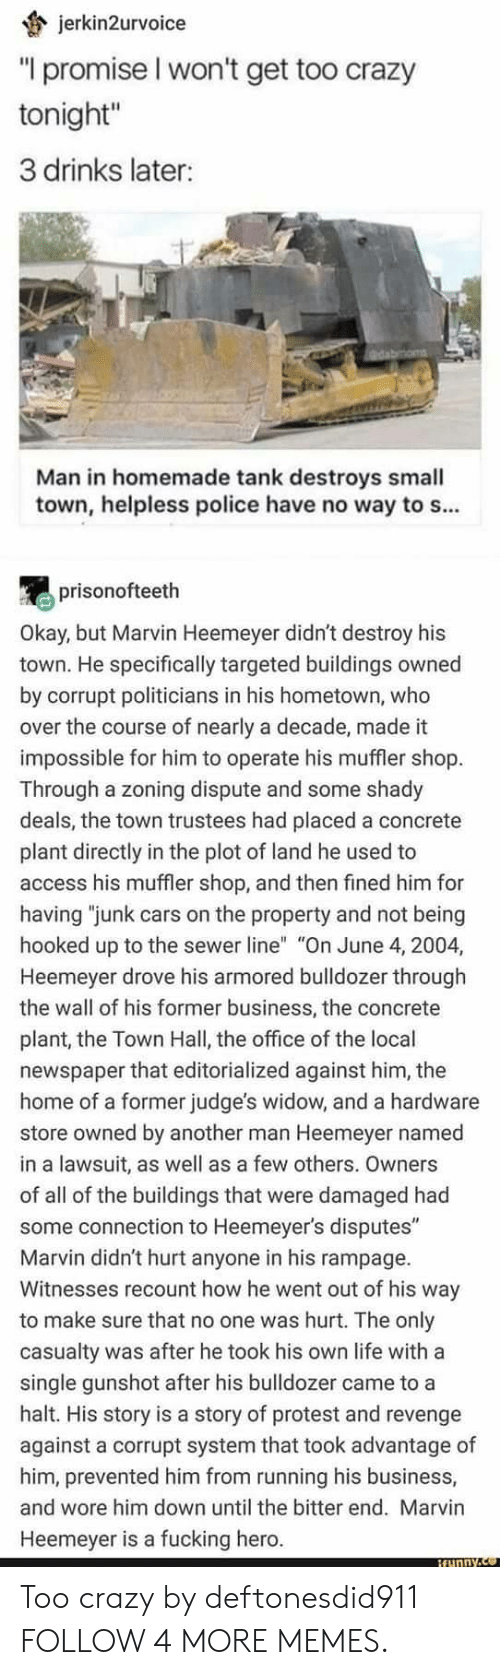 """3 Drinks Later: jerkin2urvoice  """"I promise I won't get too crazy  tonight""""  3 drinks later:  Man in homemade tank destroys small  town, helpless police have no way to s...  prisonofteeth  Okay, but Marvin Heemeyer didn't destroy his  town. He specifically targeted buildings owned  by corrupt politicians in his hometown, who  over the course of nearly a decade, made it  impossible for him to operate his muffler shop.  Through a zoning dispute and some shady  deals, the town trustees had placed a concrete  plant directly in the plot of land he used to  access his muffler shop, and then fined him for  having """"junk cars on the property and not being  hooked up to the sewer line"""" """"On June 4, 2004,  Heemeyer drove his armored bulldozer through  the wall of his former business, the concrete  plant, the Town Hall, the office of the local  newspaper that editorialized against him, the  home of a former judge's widow, and a hardware  store owned by another man Heemeyer named  in a lawsuit, as well as a few others. Owners  of all of the buildings that were damaged had  some connection to Heemeyer's disputes""""  Marvin didn't hurt anyone in his rampage  Witnesses recount how he went out of his way  to make sure that no one was hurt. The only  casualty was after he took his own life with a  single gunshot after his bulldozer came to a  halt. His story is a story of protest and revenge  against a corrupt system that took advantage of  him, prevented him from running his business,  and wore him down until the bitter end. Marvin  Heemeyer is a fucking hero.  BEunny.co Too crazy by deftonesdid911 FOLLOW 4 MORE MEMES."""